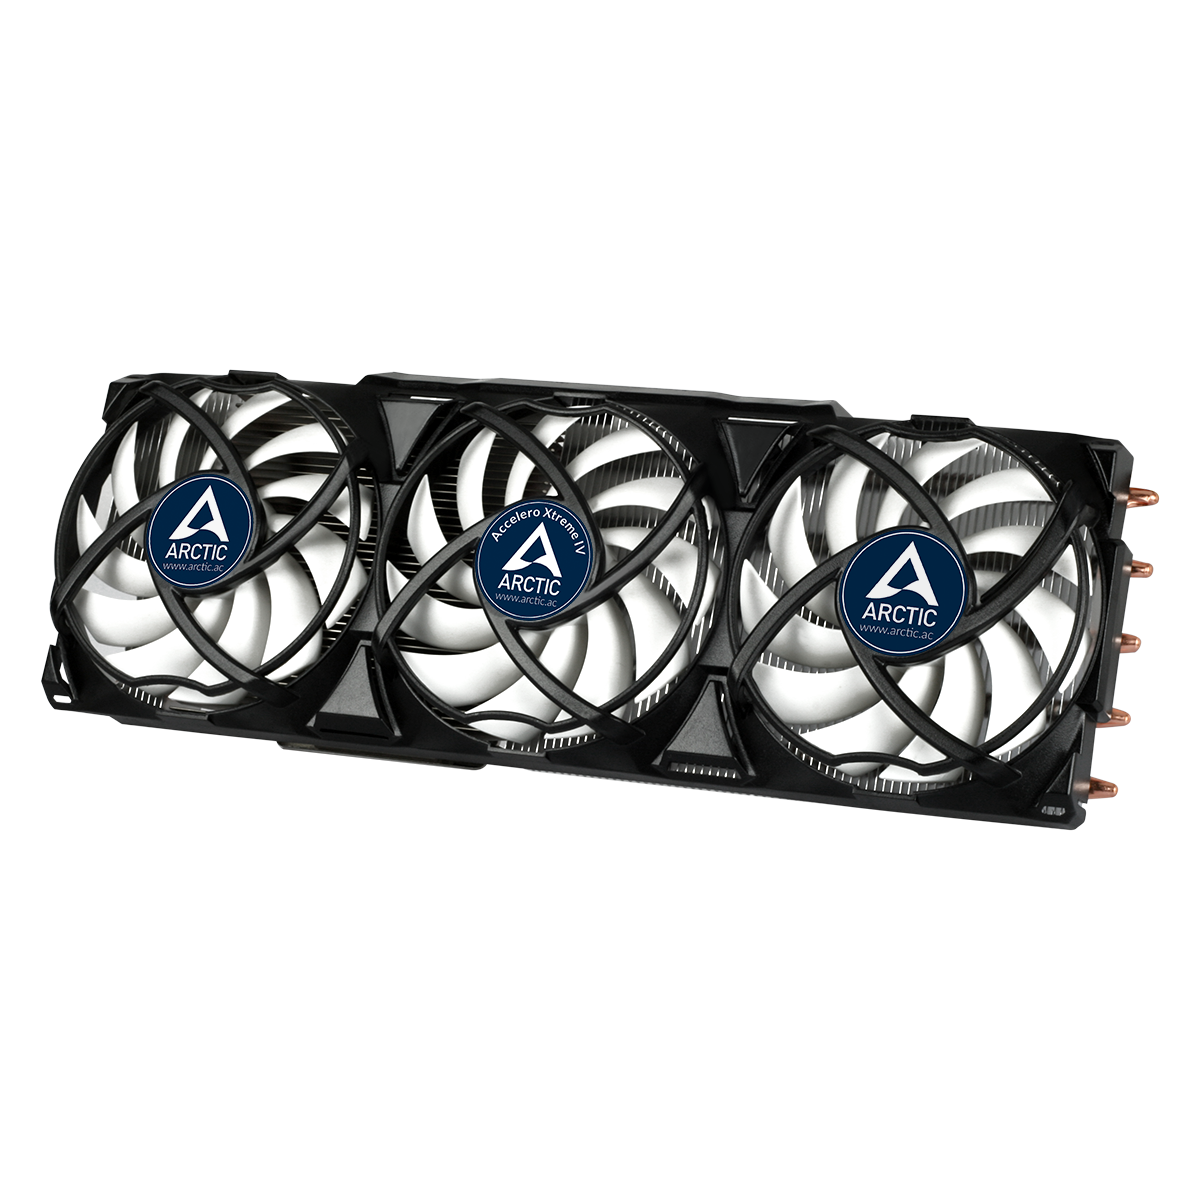 High-End VGA Cooler with Backside Cooler ARCTIC Accelero Xtreme IV